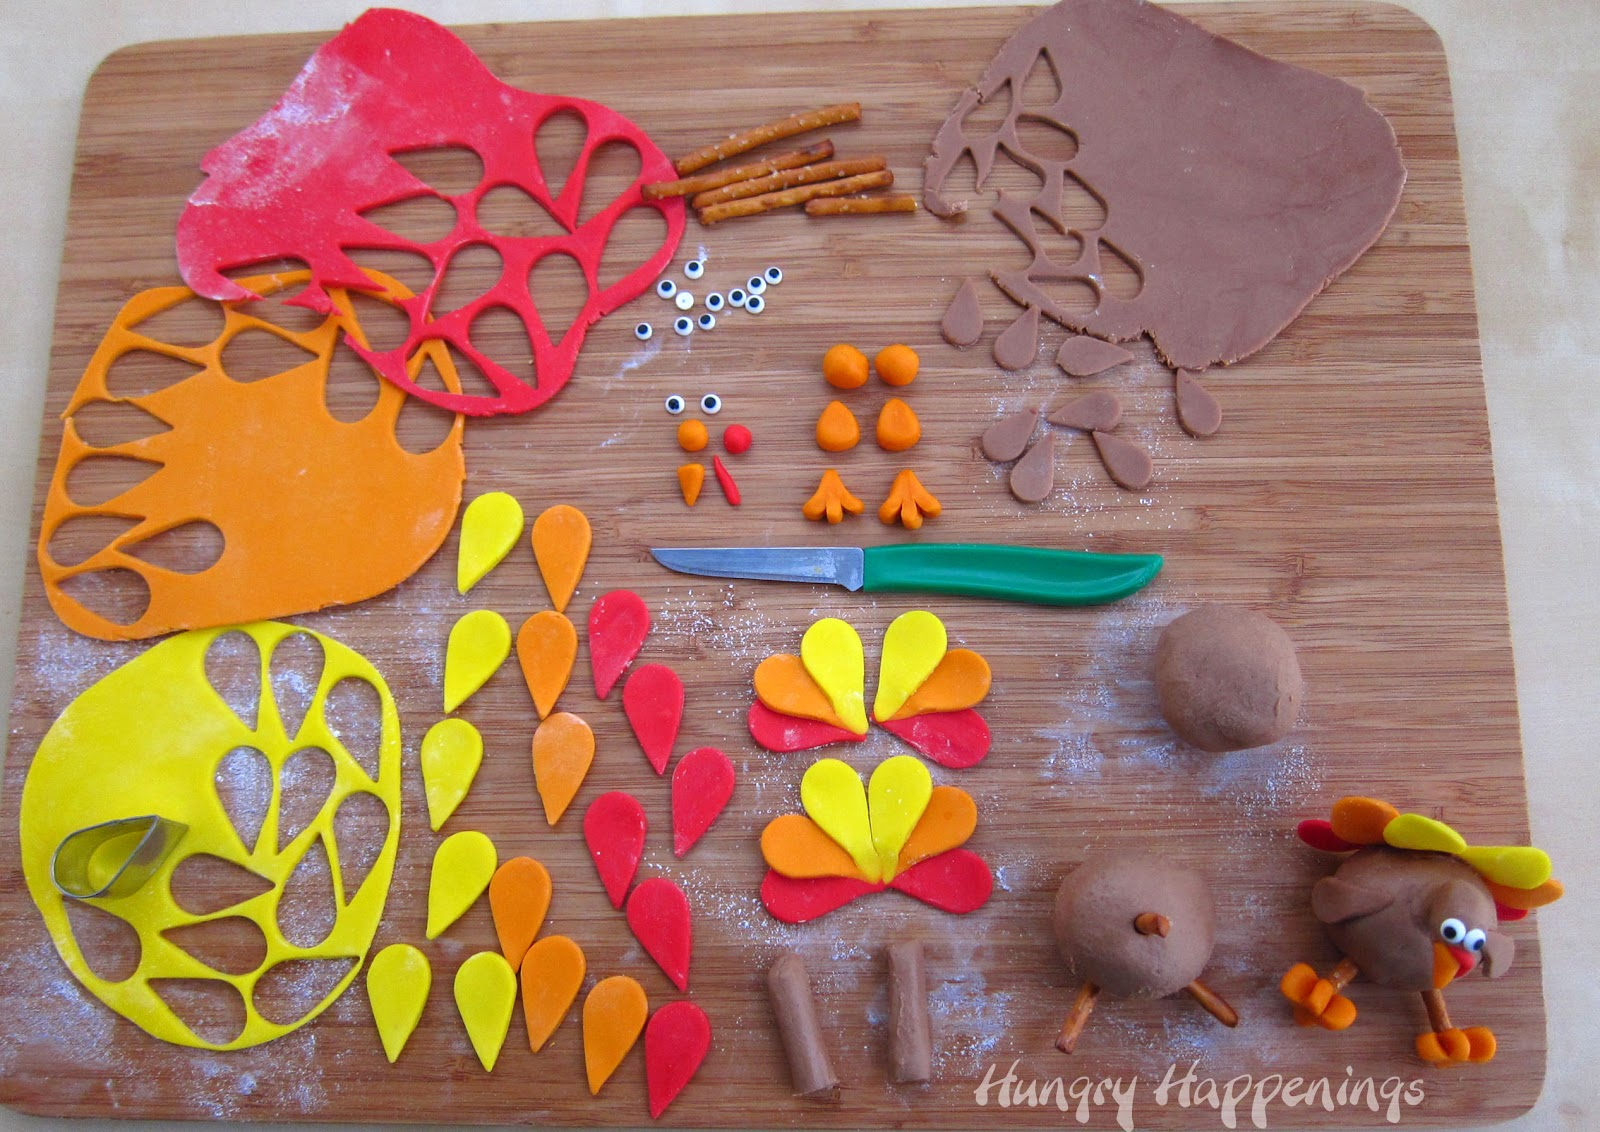 Thanksgiving Decorations Made With Candy : � pinterest�